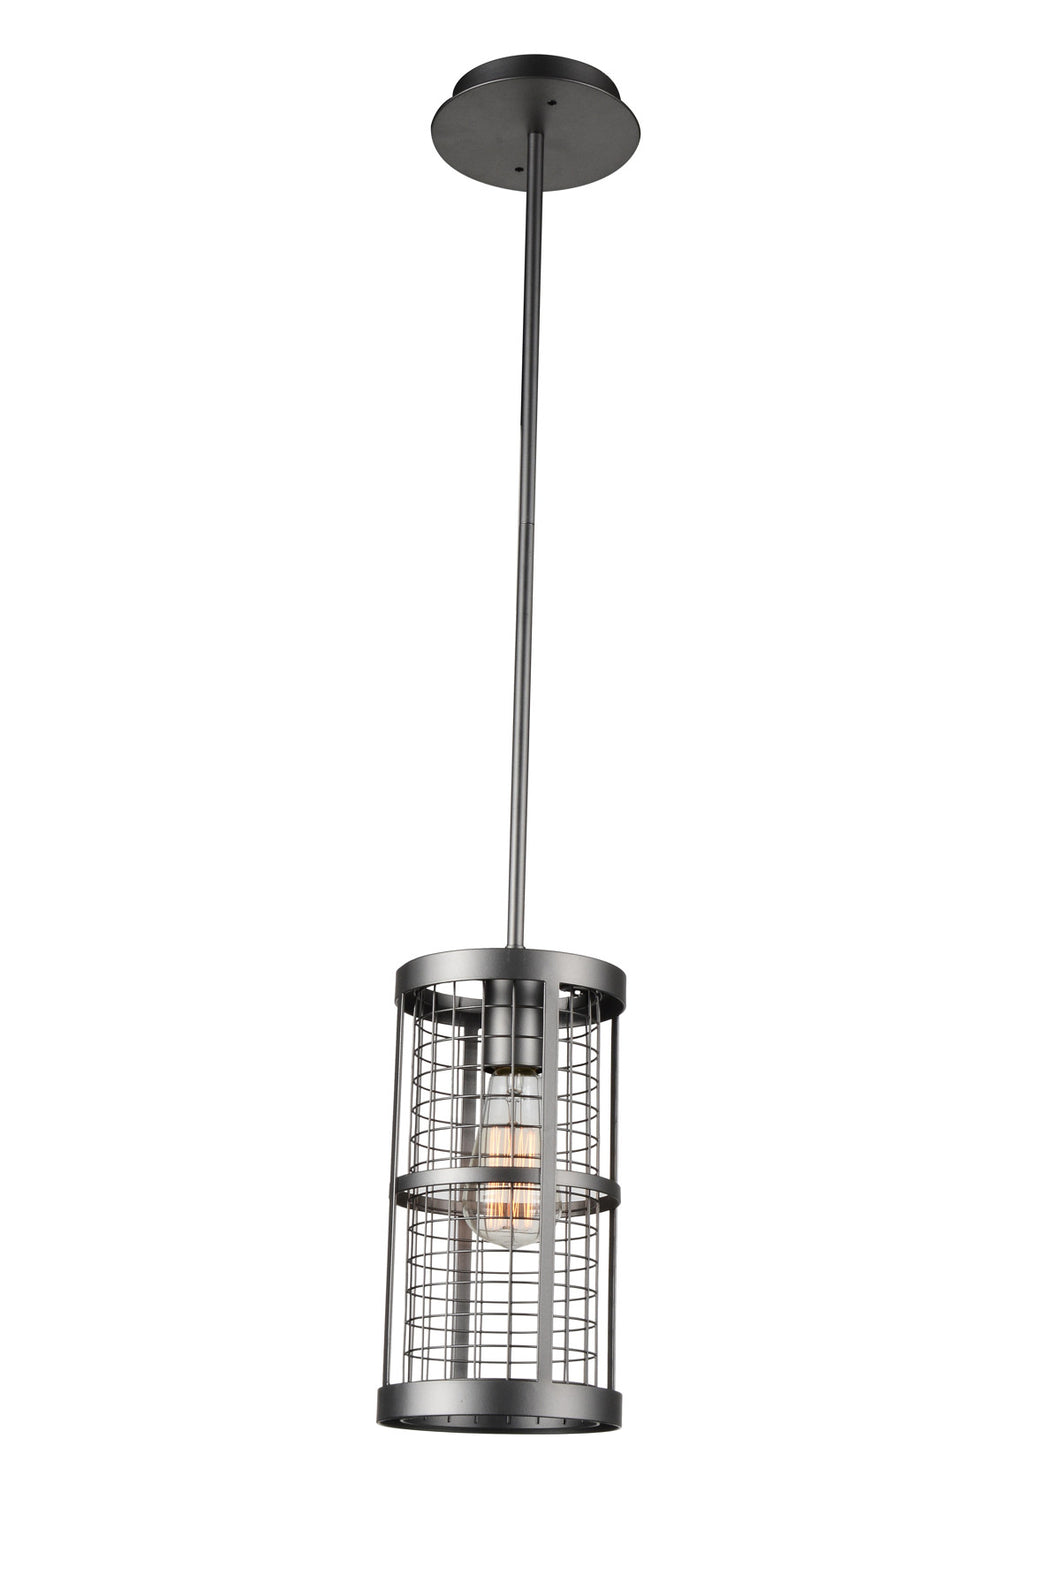 1 Light Up Mini Pendant with Pewter finish